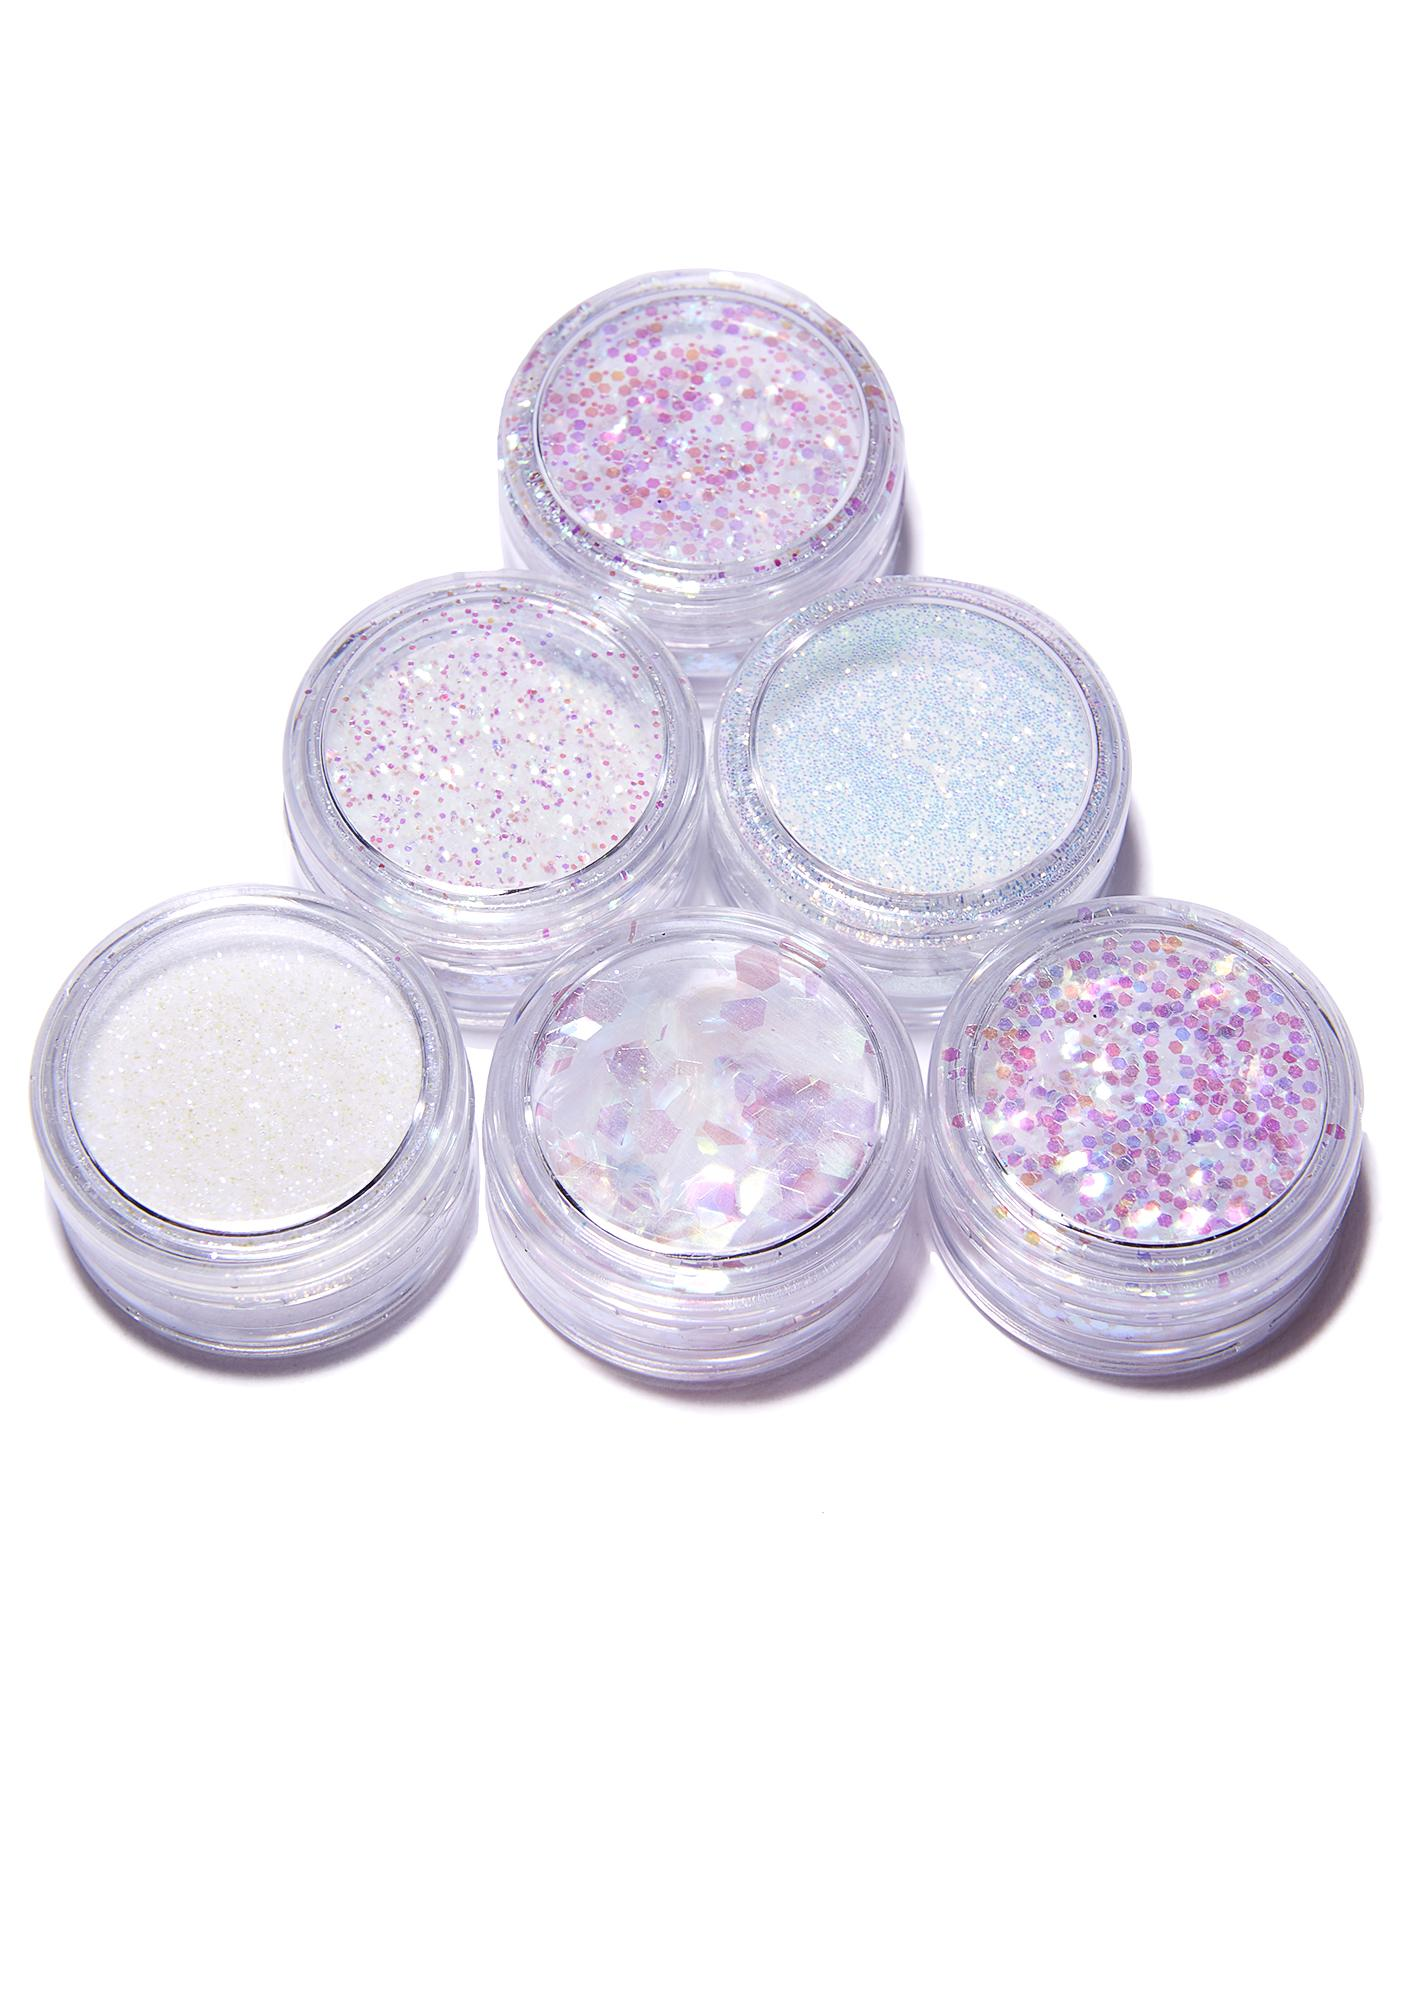 FromNicLove Iridescent Angel Glitter Set